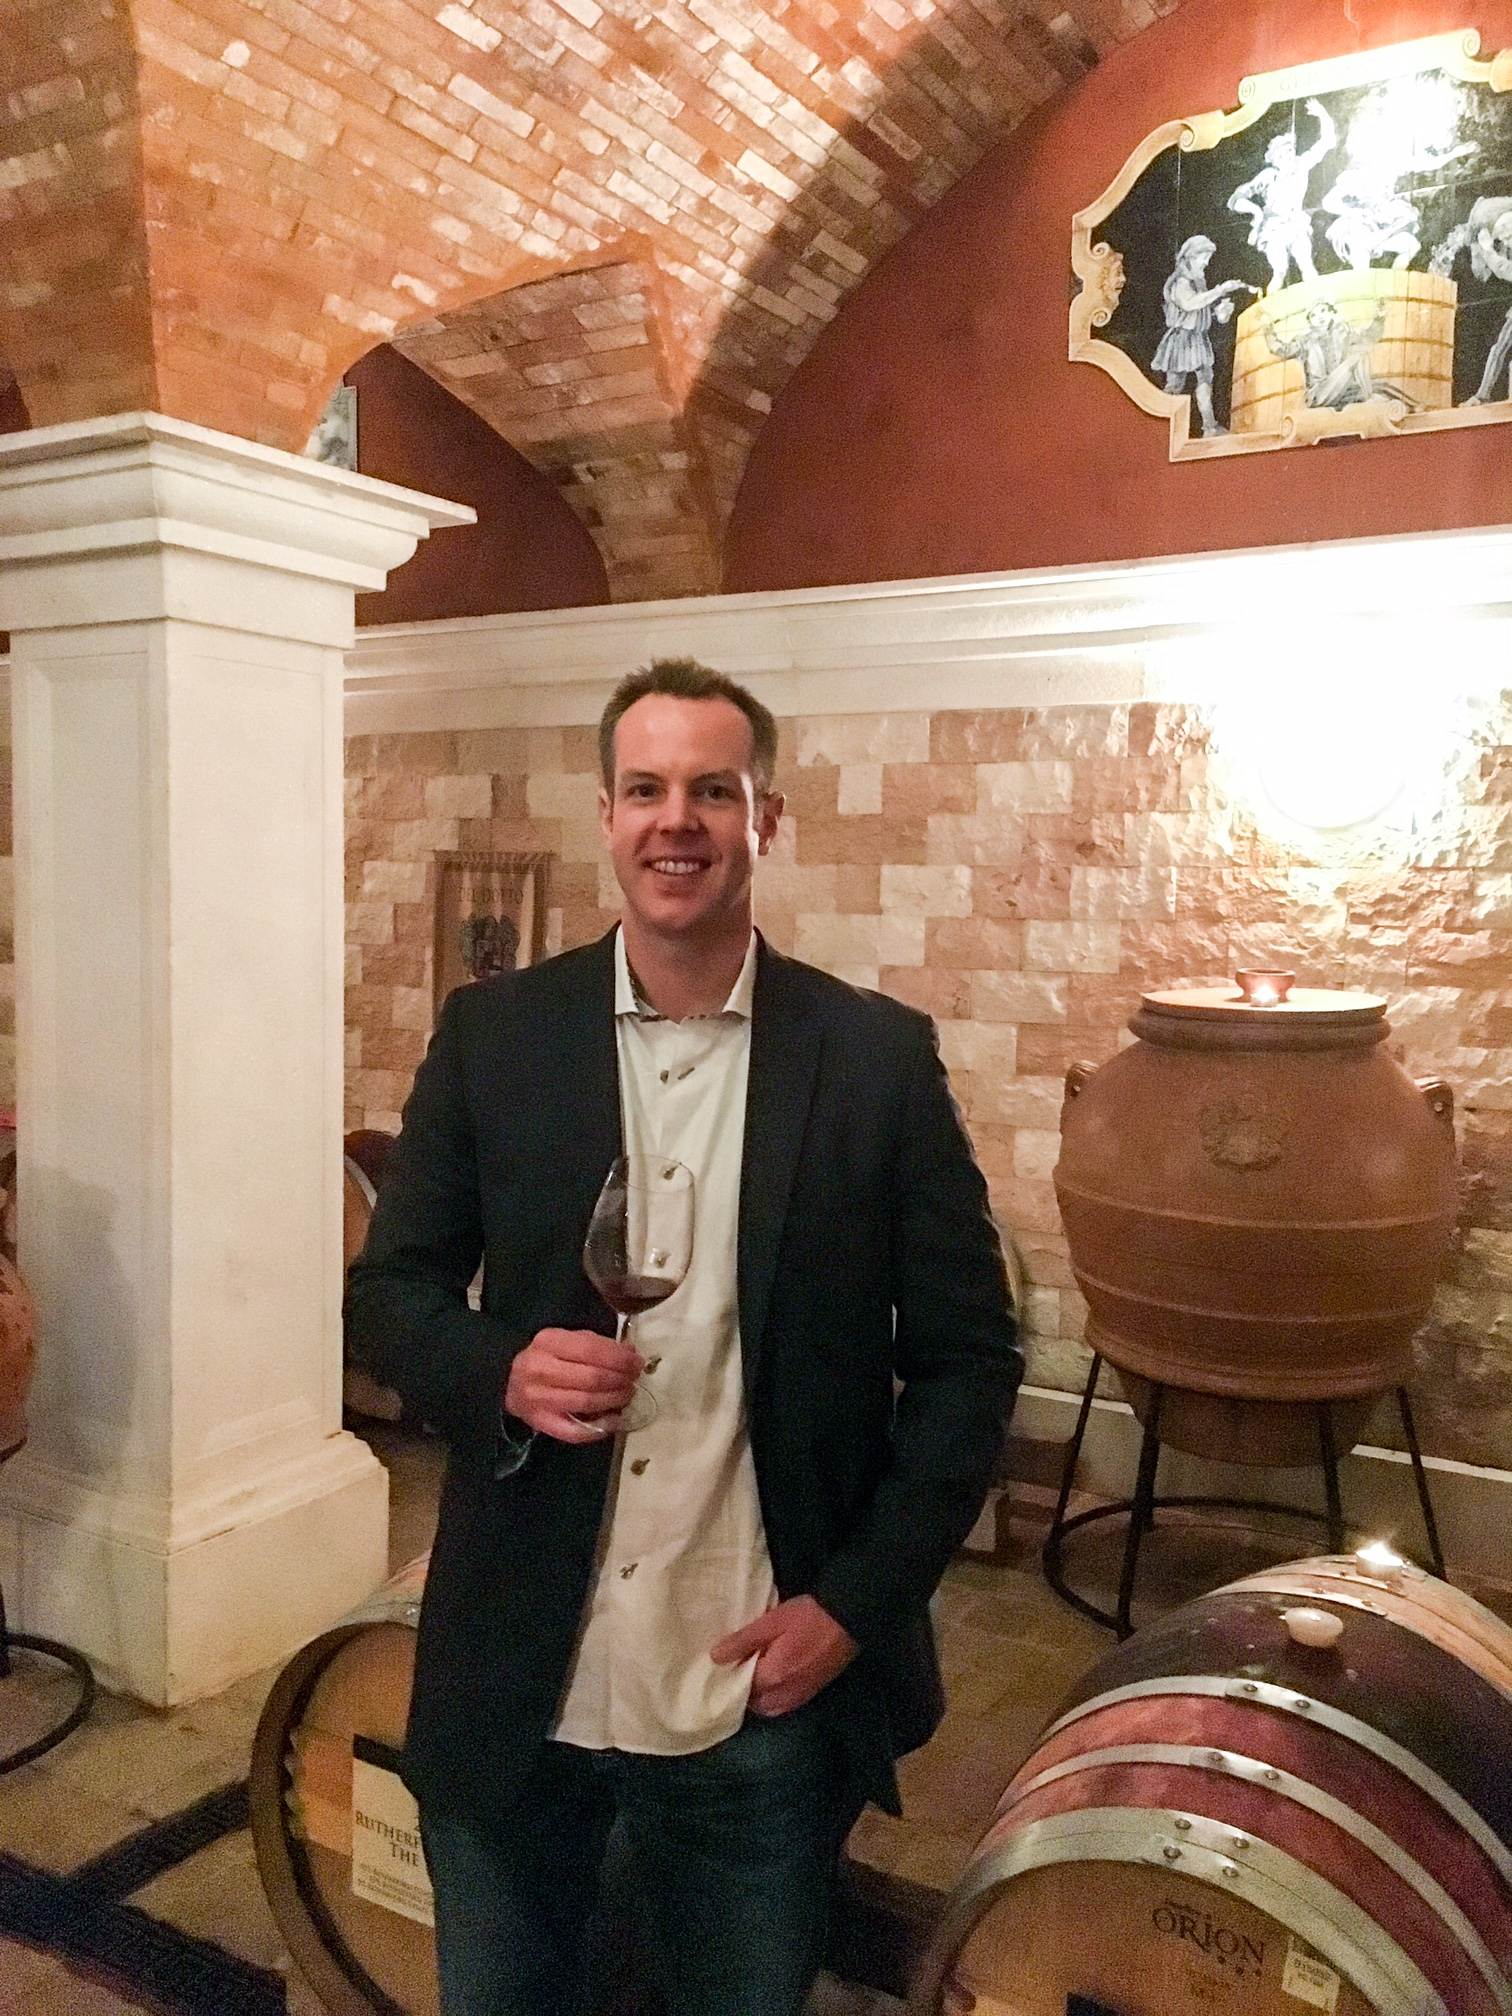 The cave at Del Dotto is one of the most stunning sites to taste wine in California.